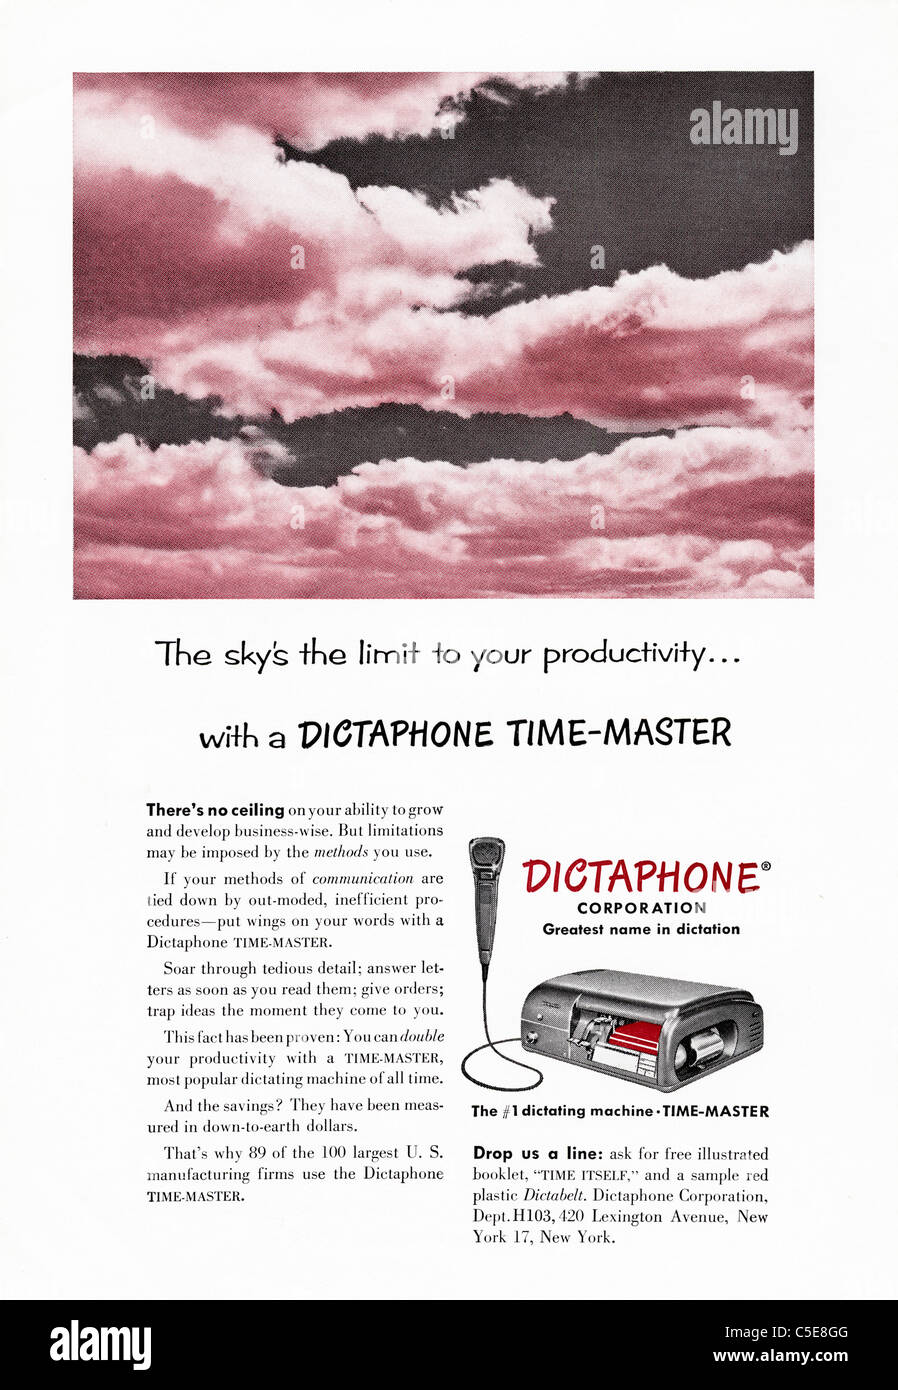 Original 1950s advert in American magazine advertising DICTAPHONE recording machine - Stock Image